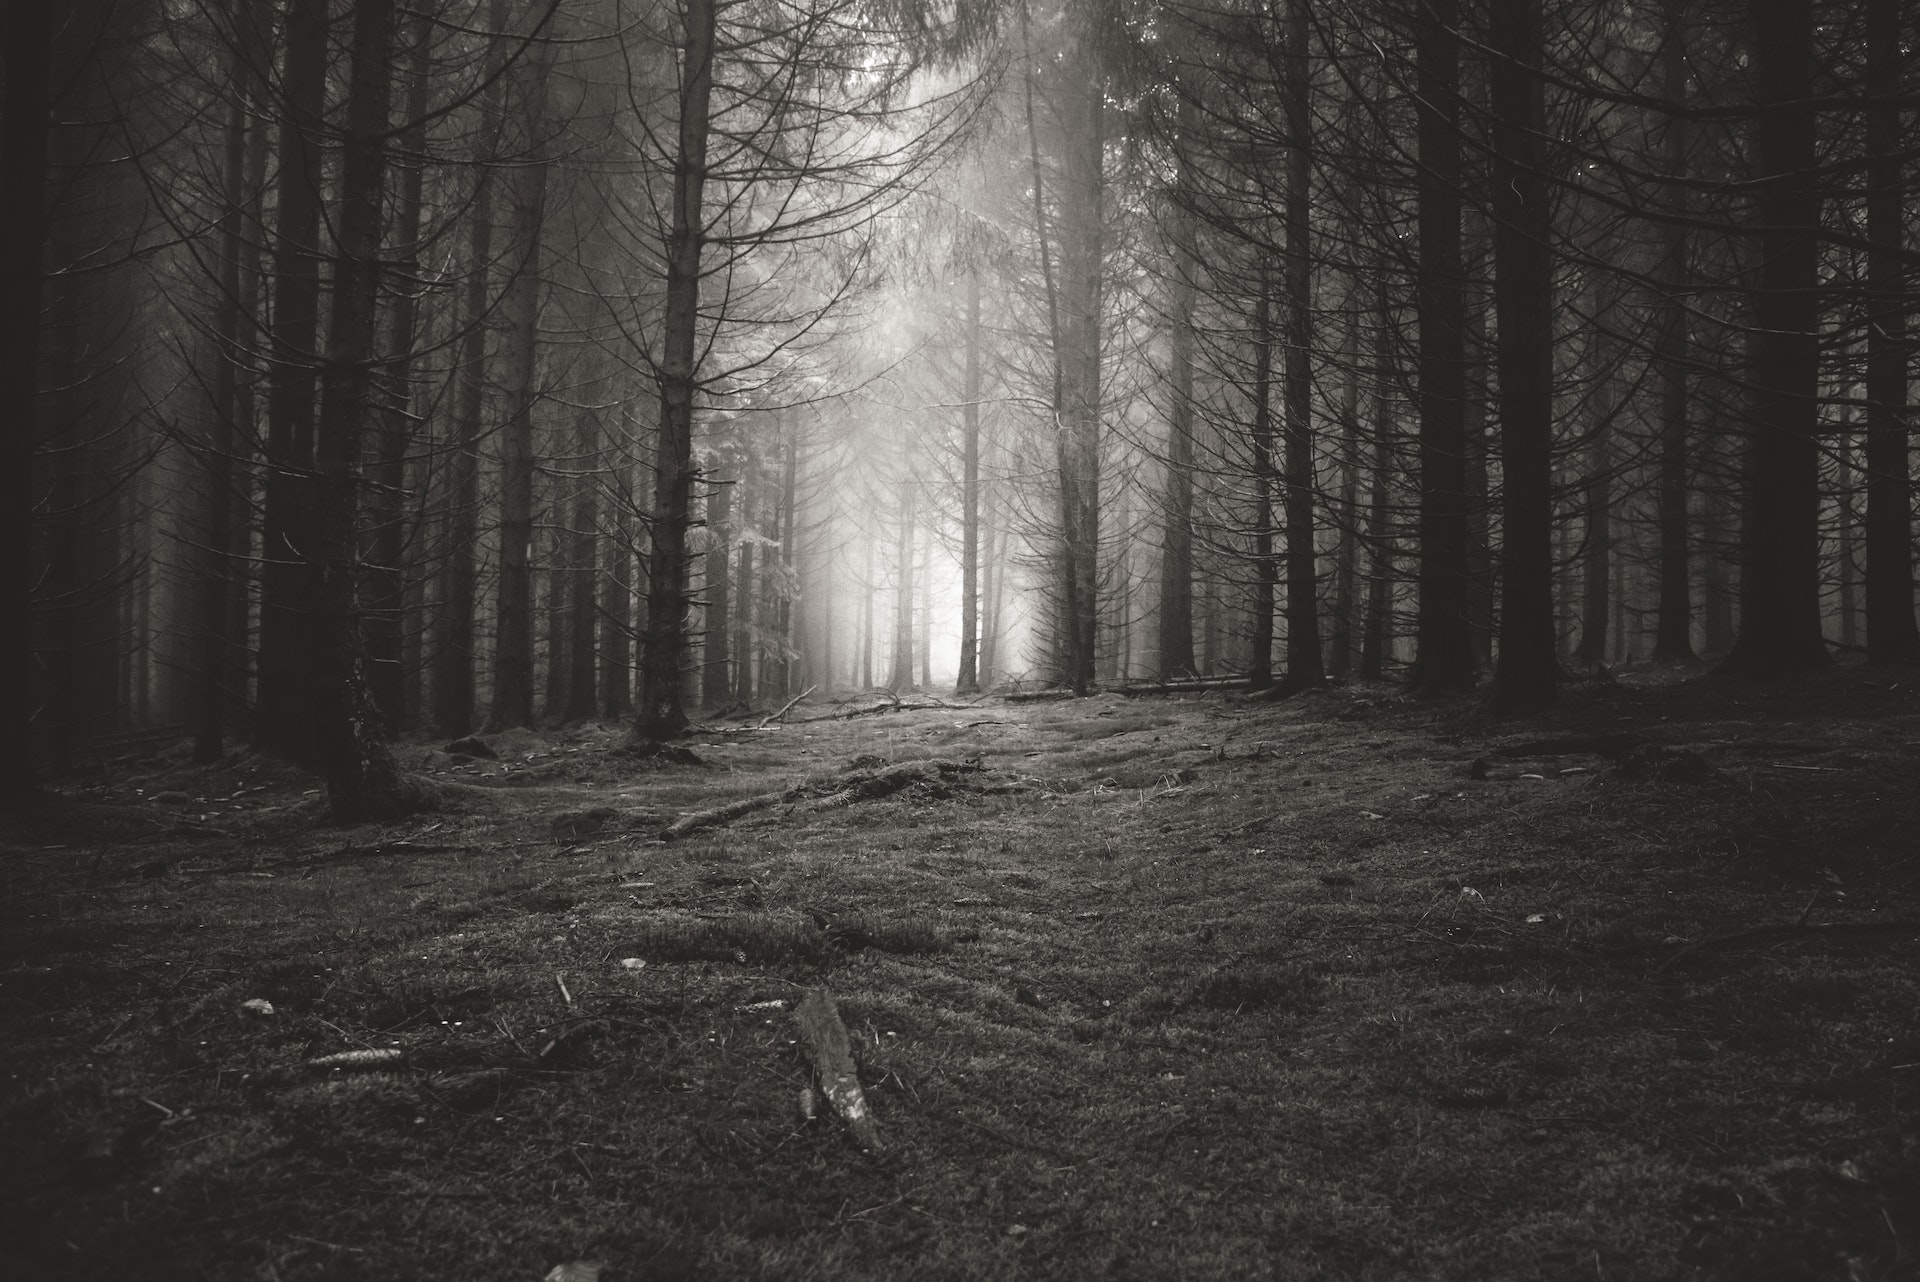 grayscale photo of forest trees